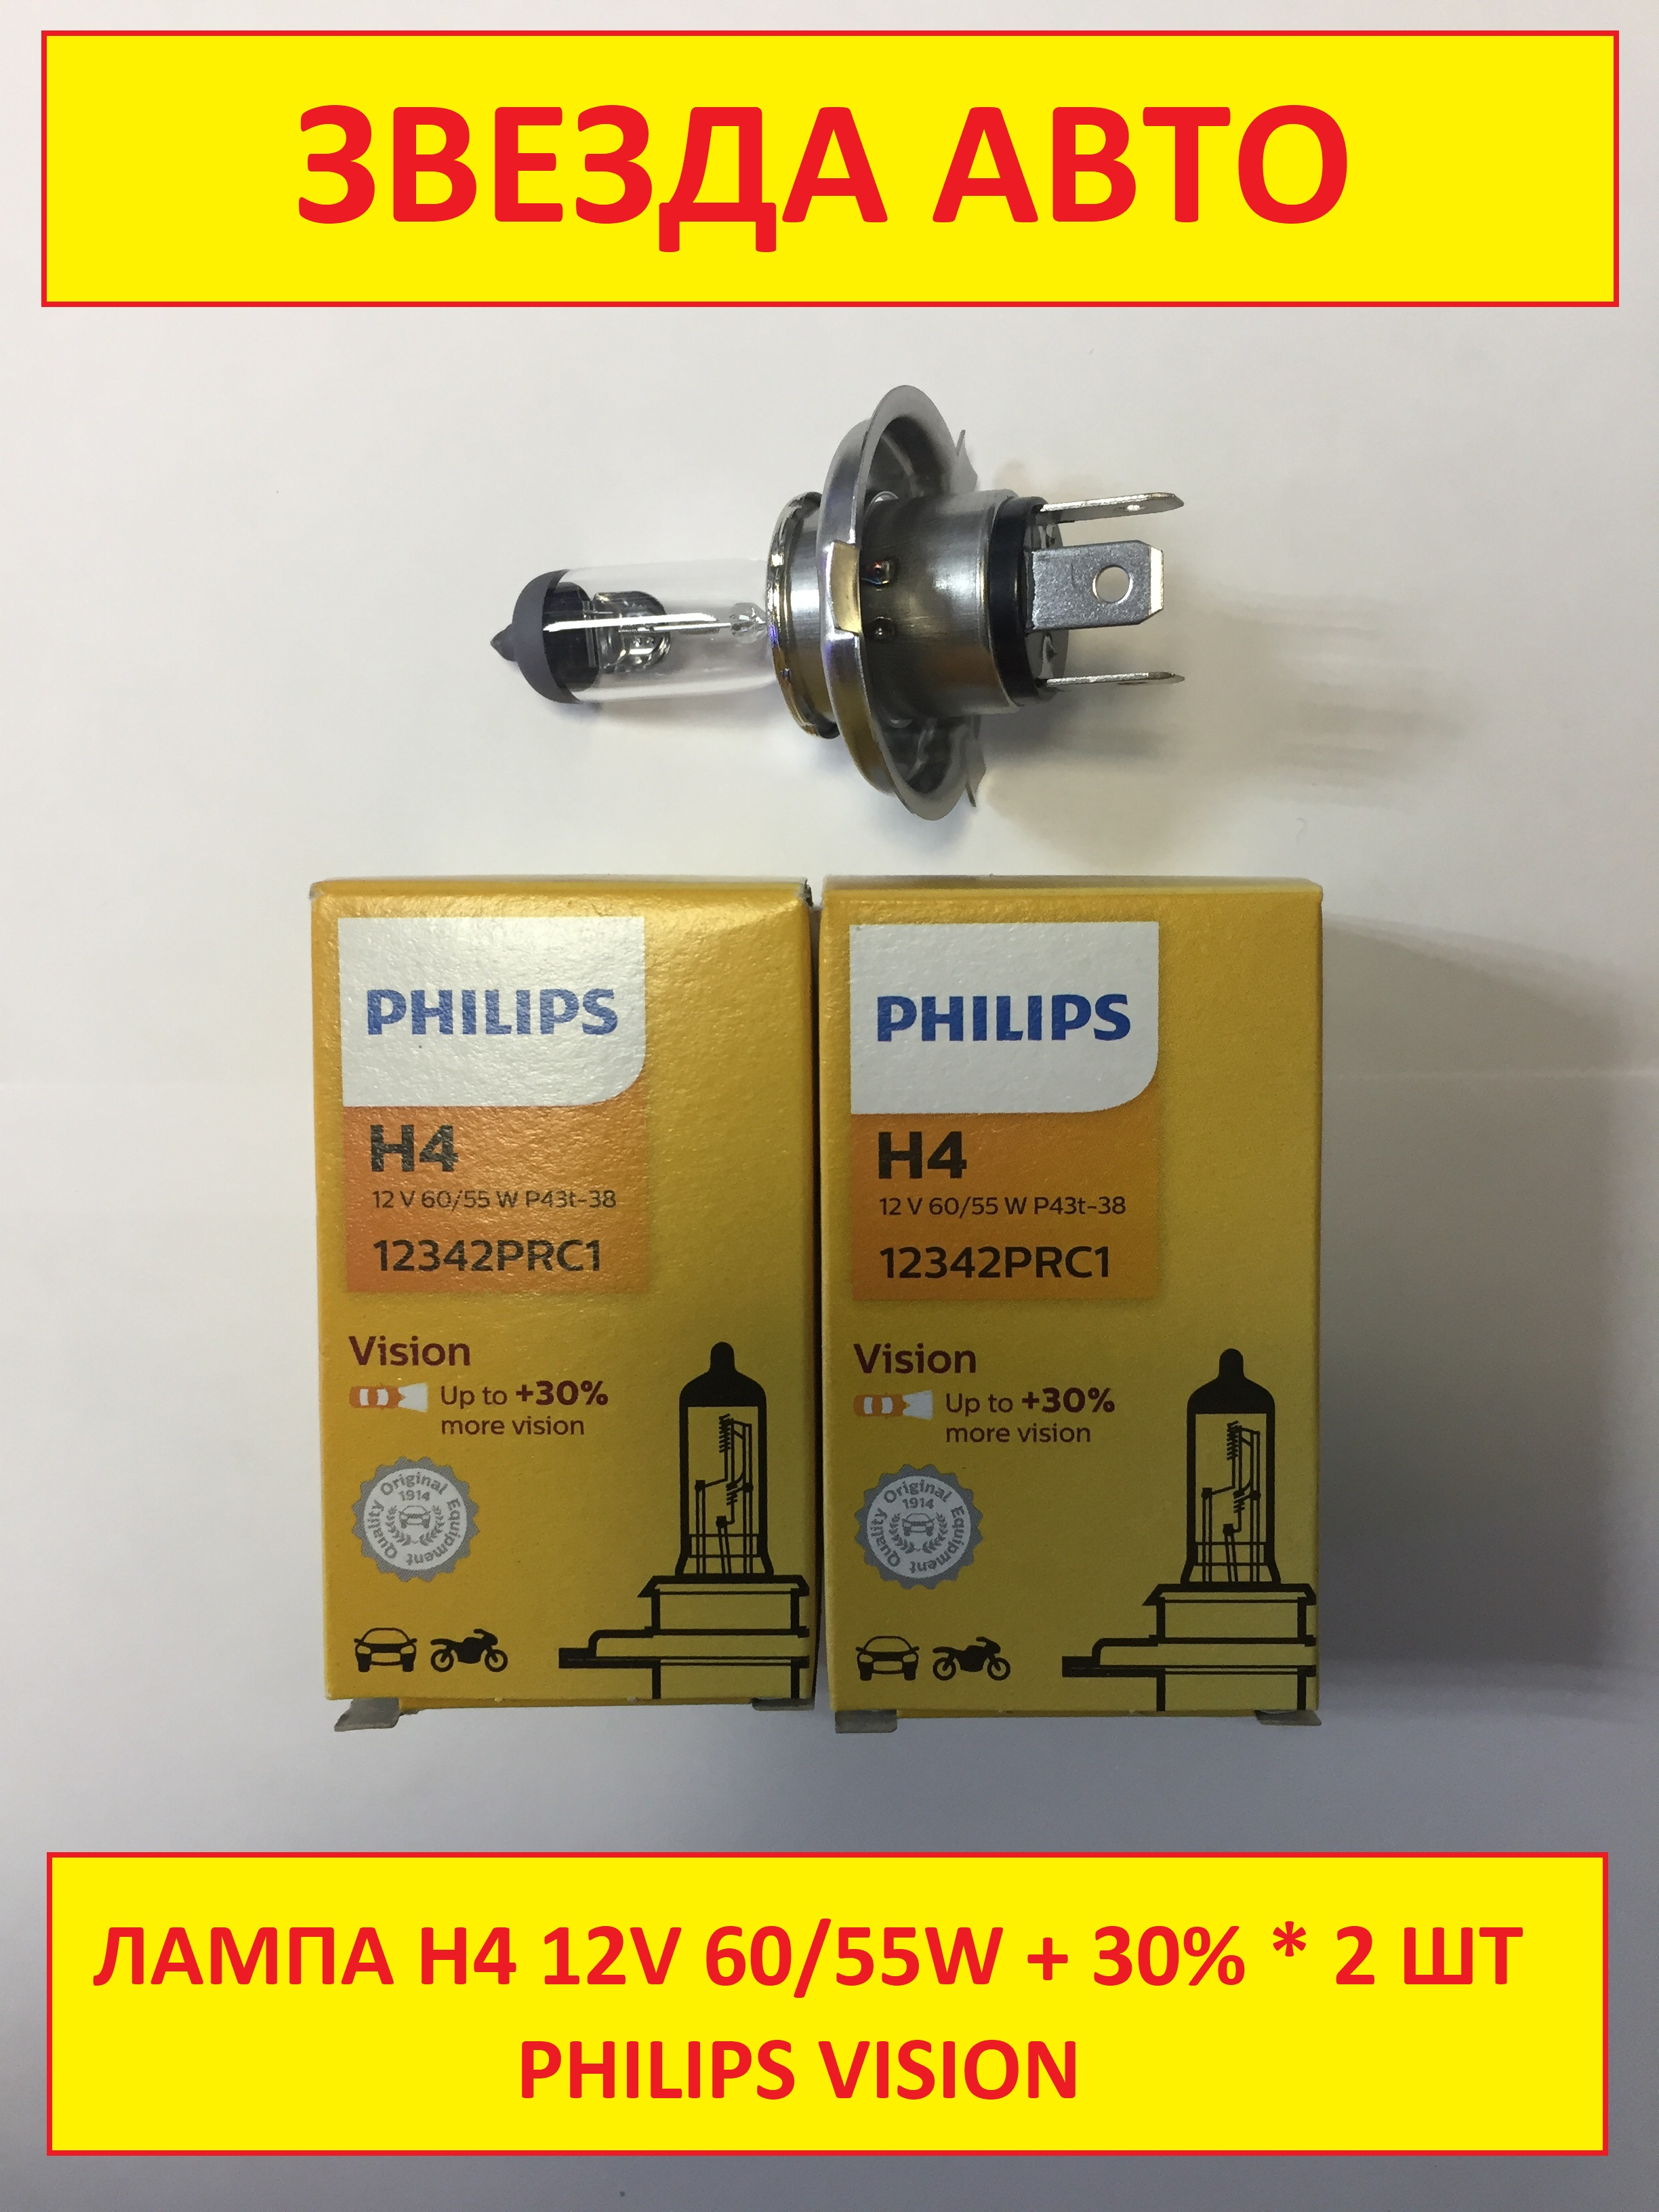 2pc Philips <font><b>H4</b></font> 12v <font><b>60</b></font>/<font><b>55w</b></font> halogen headlight <font><b>lamp</b></font> Original 12342PRC1 image